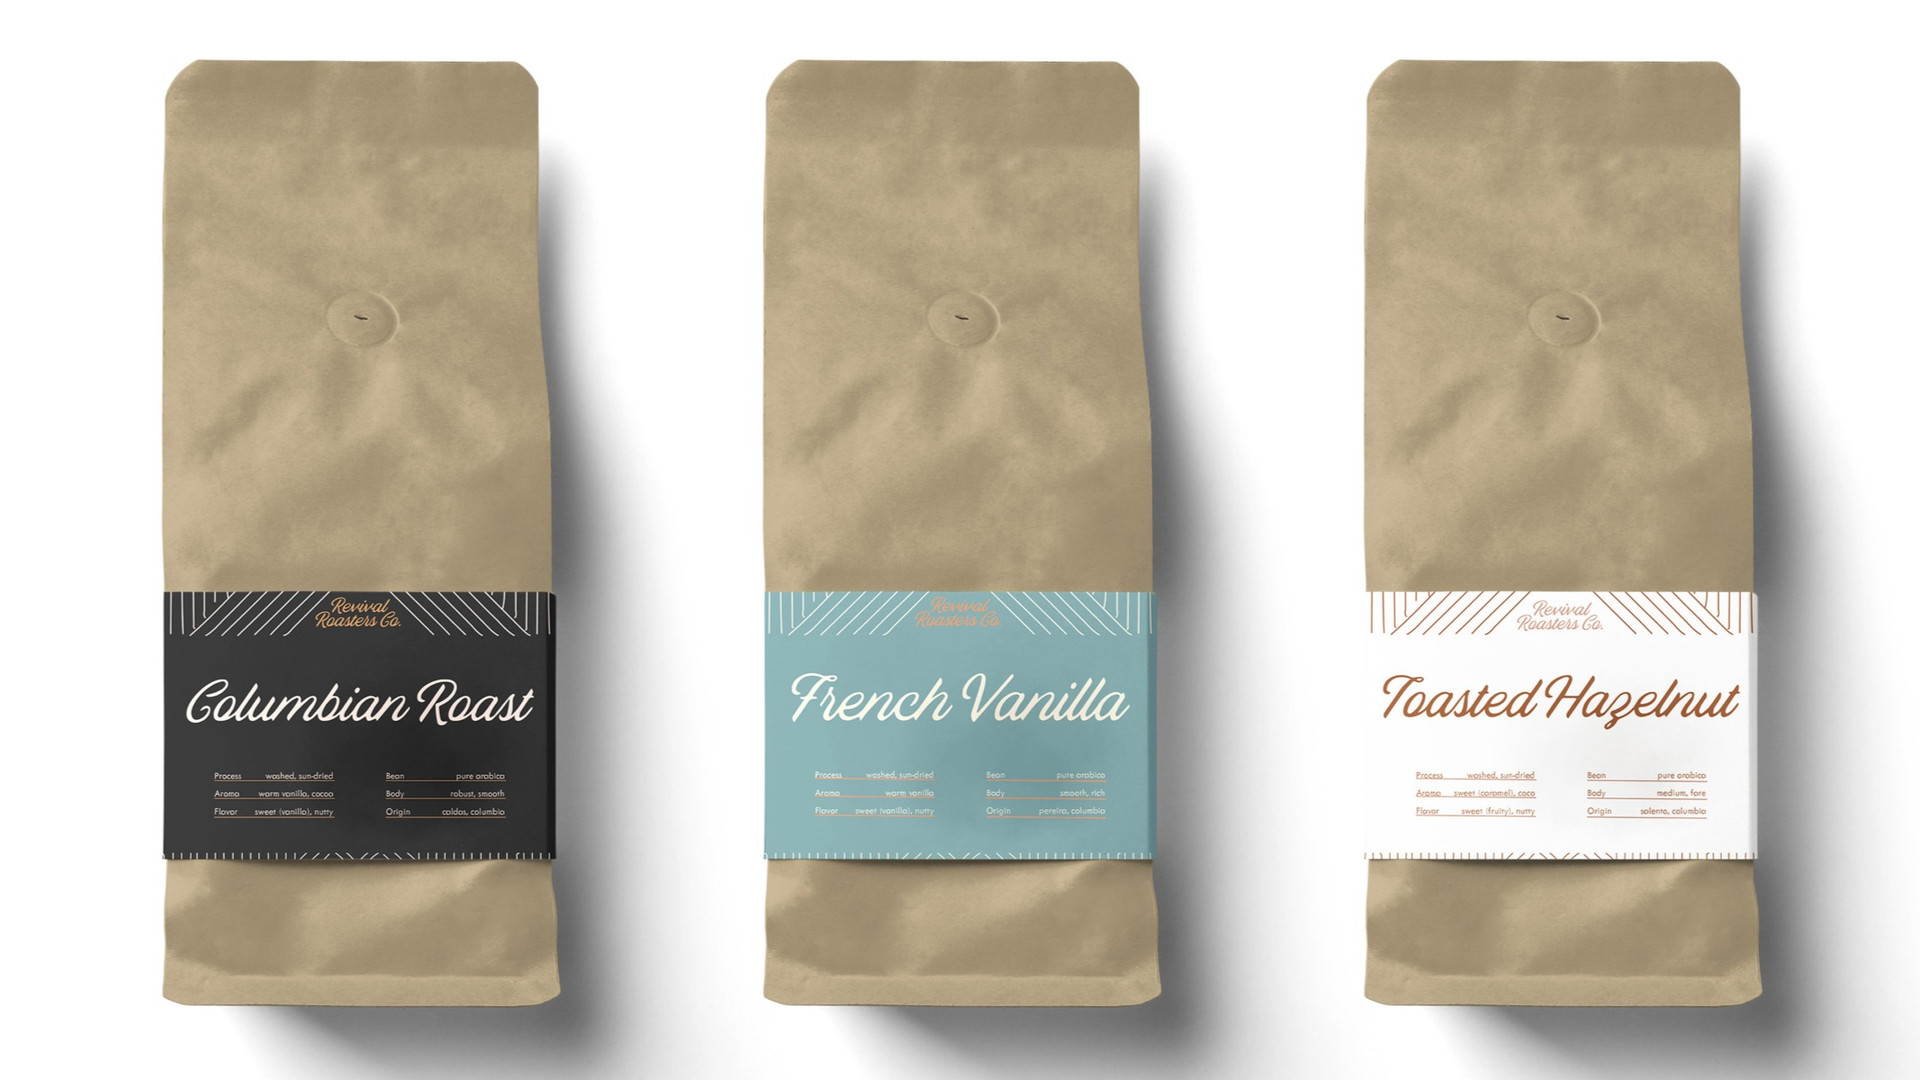 Columbian Roast, French Vanilla, and Toasted Hazelnut Coffee Bean Bag Packaging